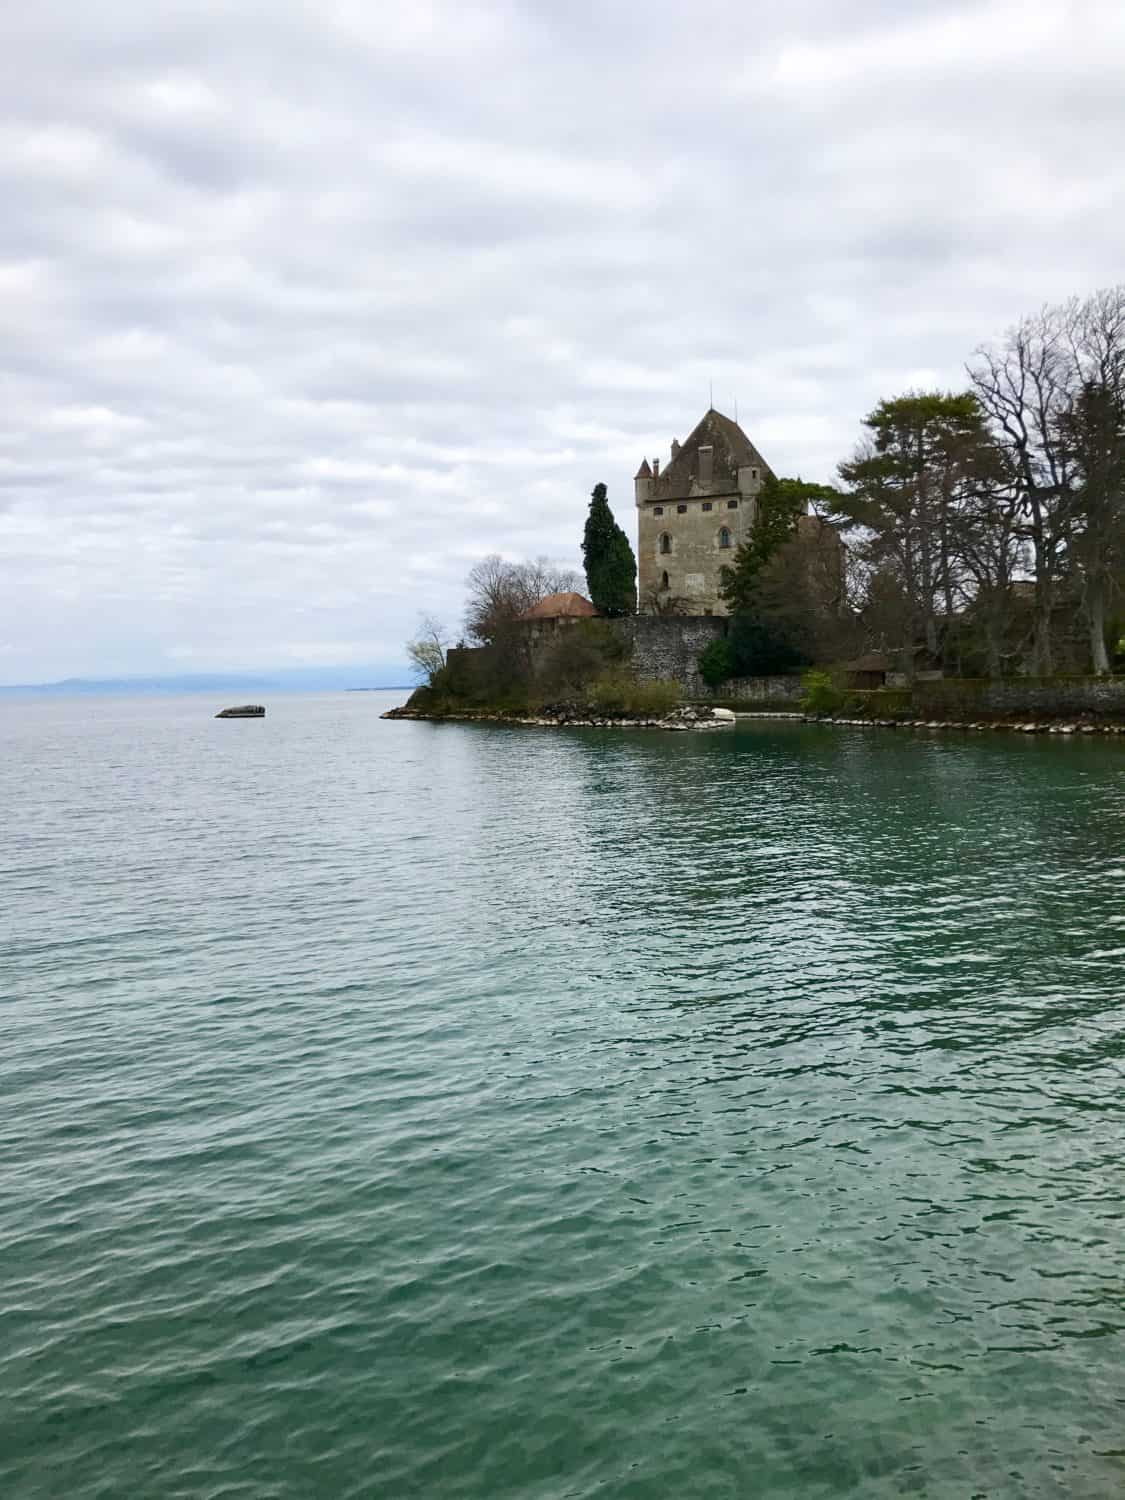 Exploring tiny Yvoire, France | Switzerland's Chateau Chillon and tiny medieval Yvoire are a perfect day trip from Geneva | how to plan your trip, how to visit Chateau Chillon, day trips from Geneva, what to do in Geneva, Switzerland trip planning tips #chateauchillon #yvoire #geneva #switzerland